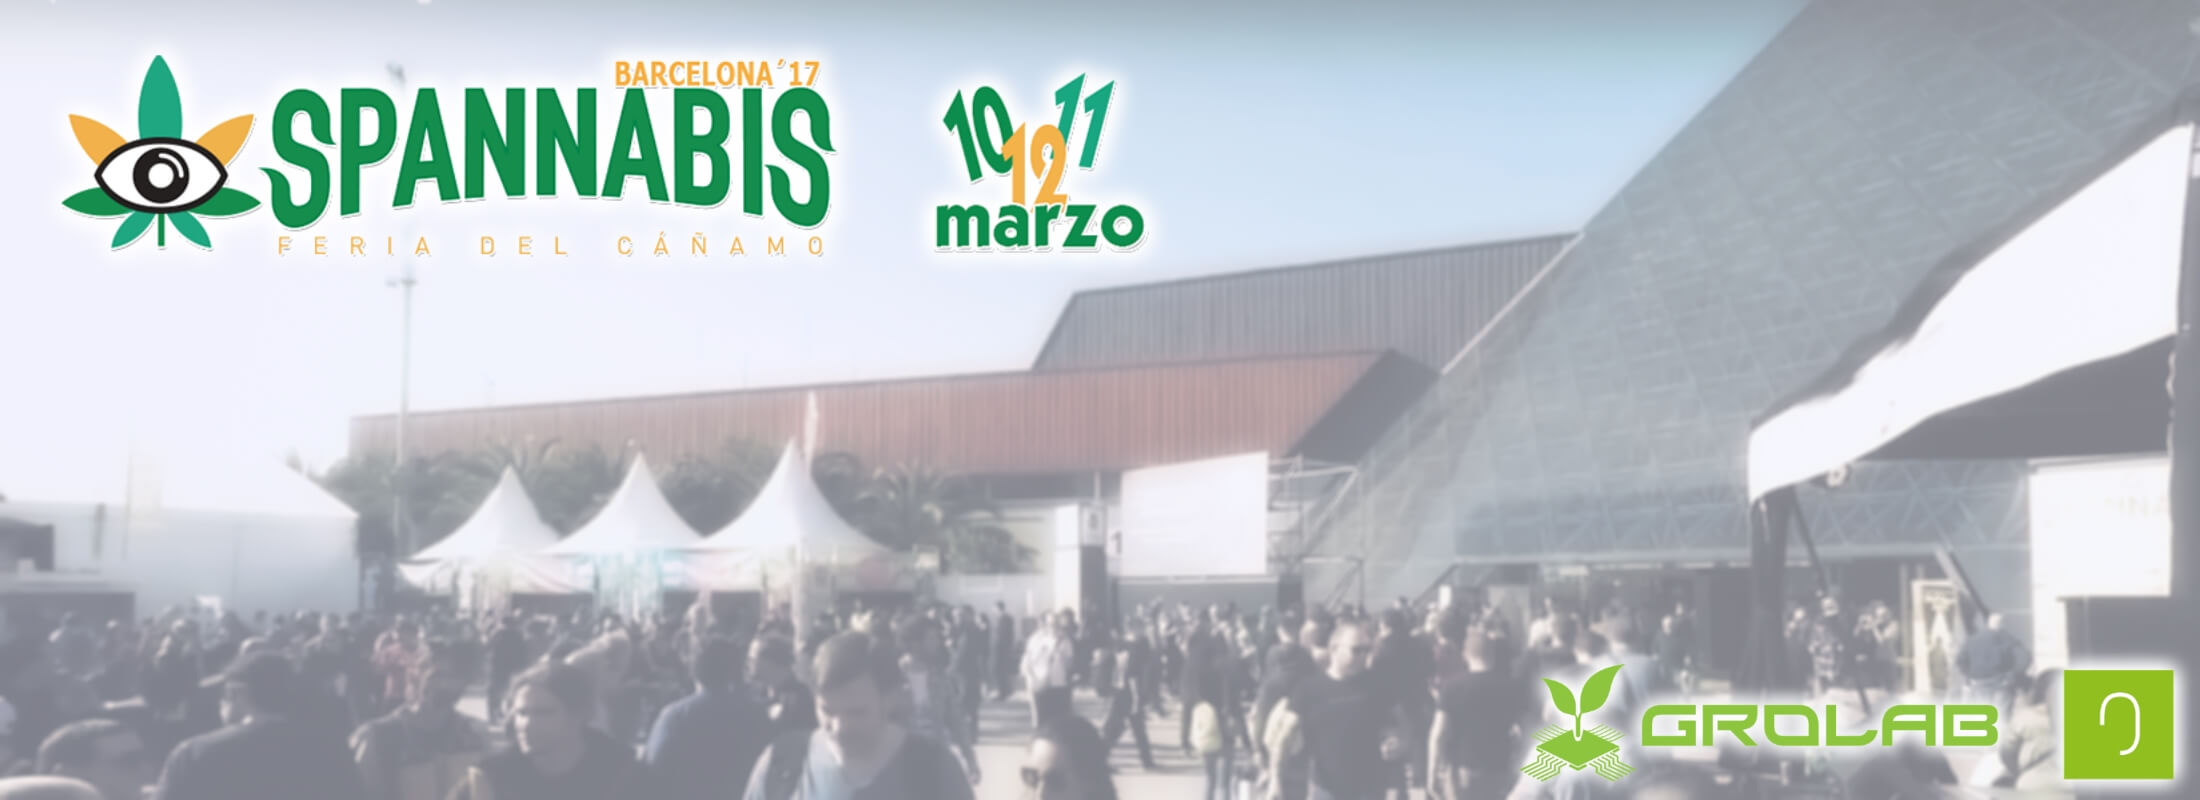 Spannabis Barcelona 2017 outside view, with Spannabis logo on top-left corner, Open Grow™ and GroLab™ logos on bottom-right corner